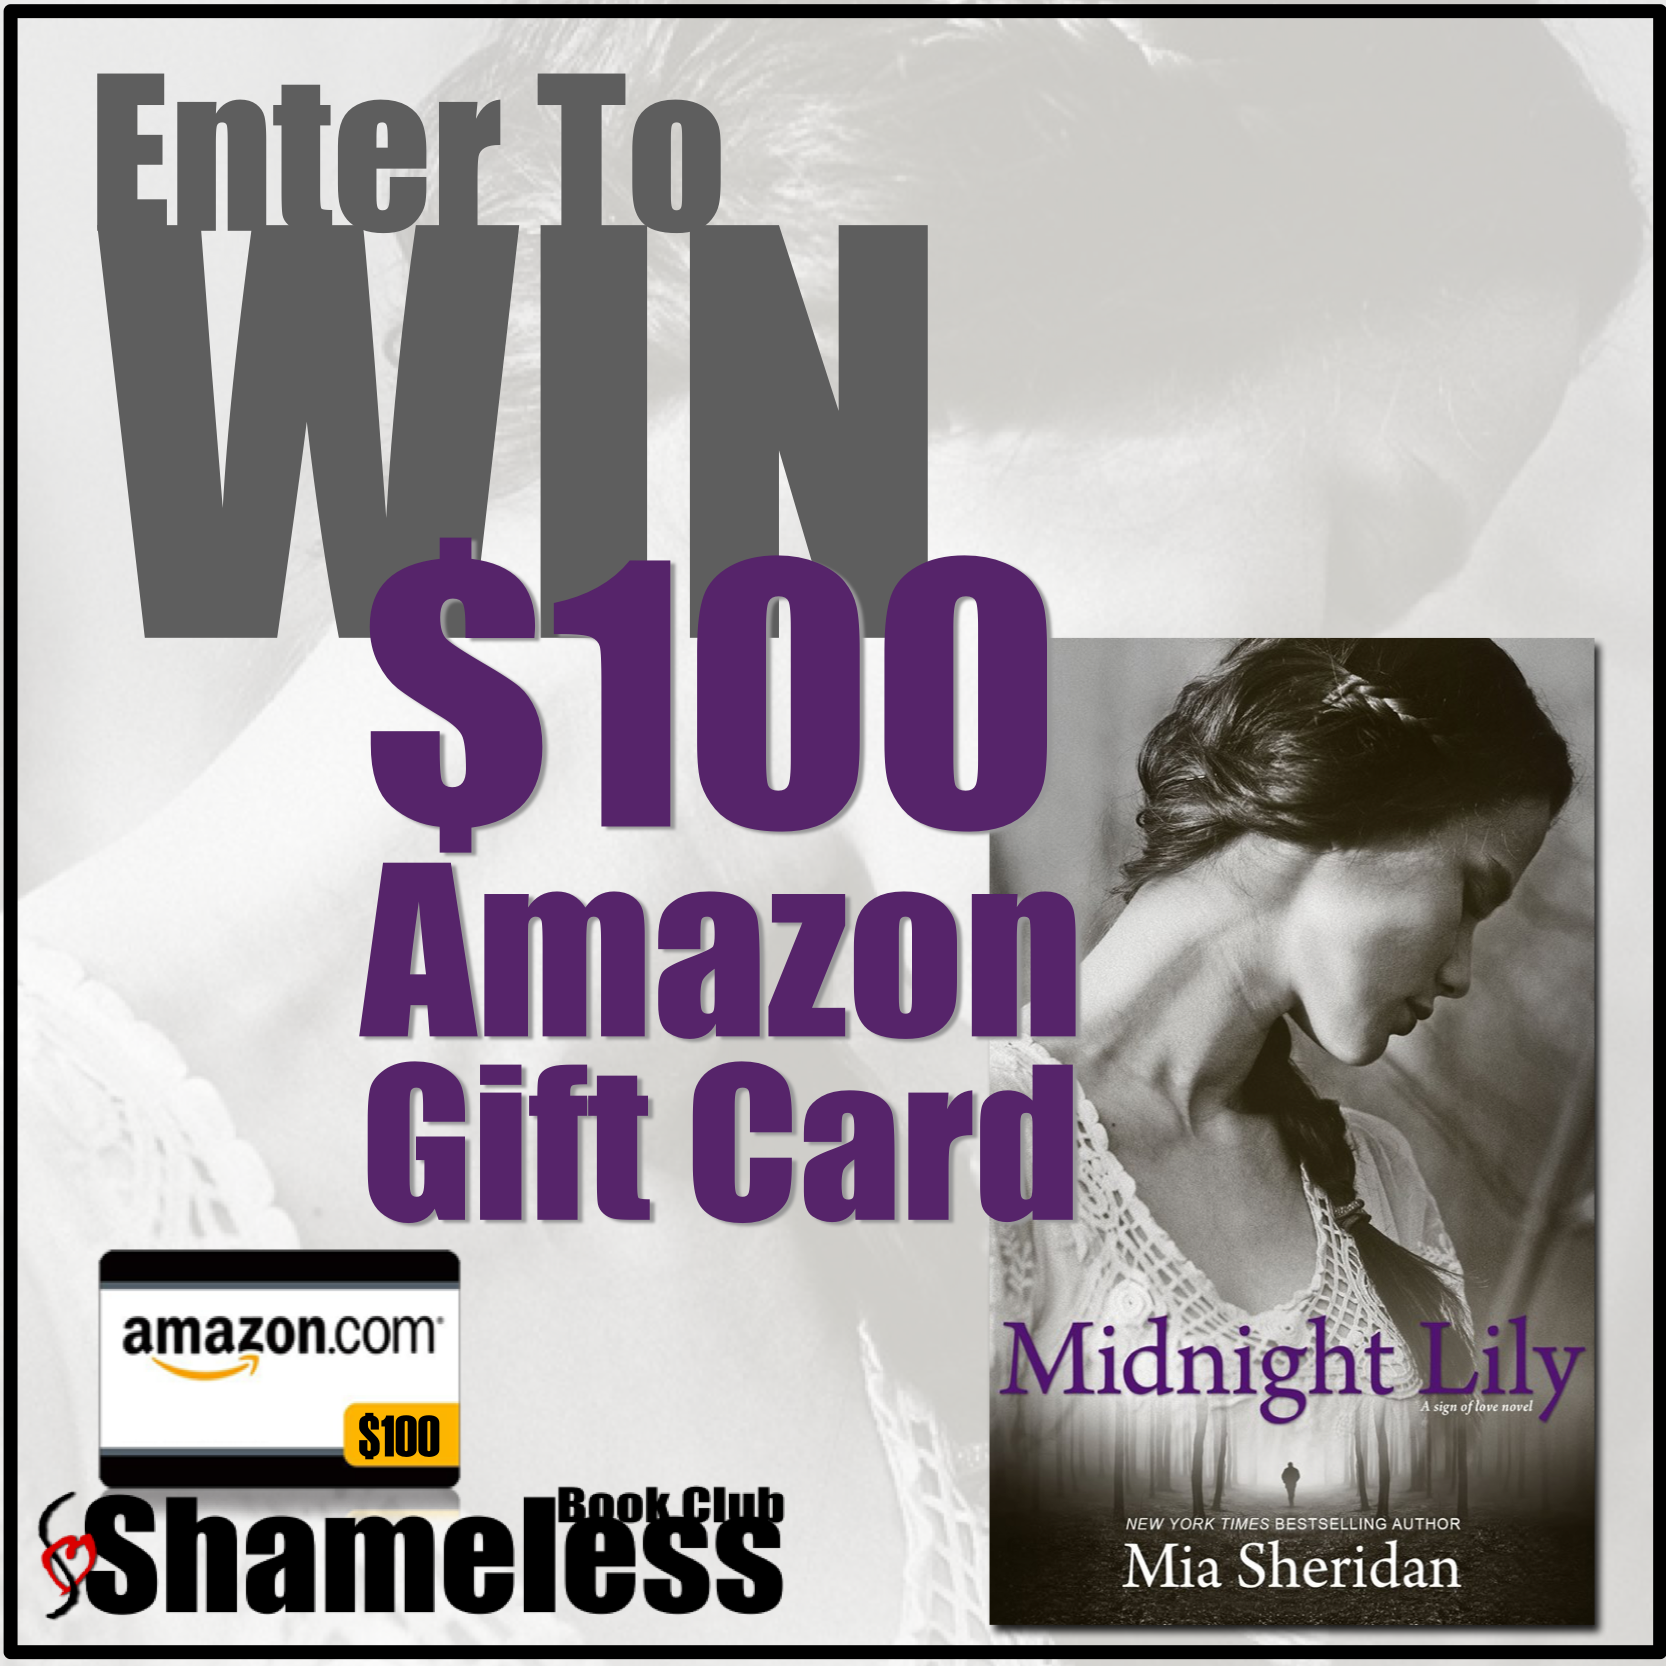 Enter to WIN a $100 Gift Card from Mia Sheridan to celebrate the release of Midnight Lily!